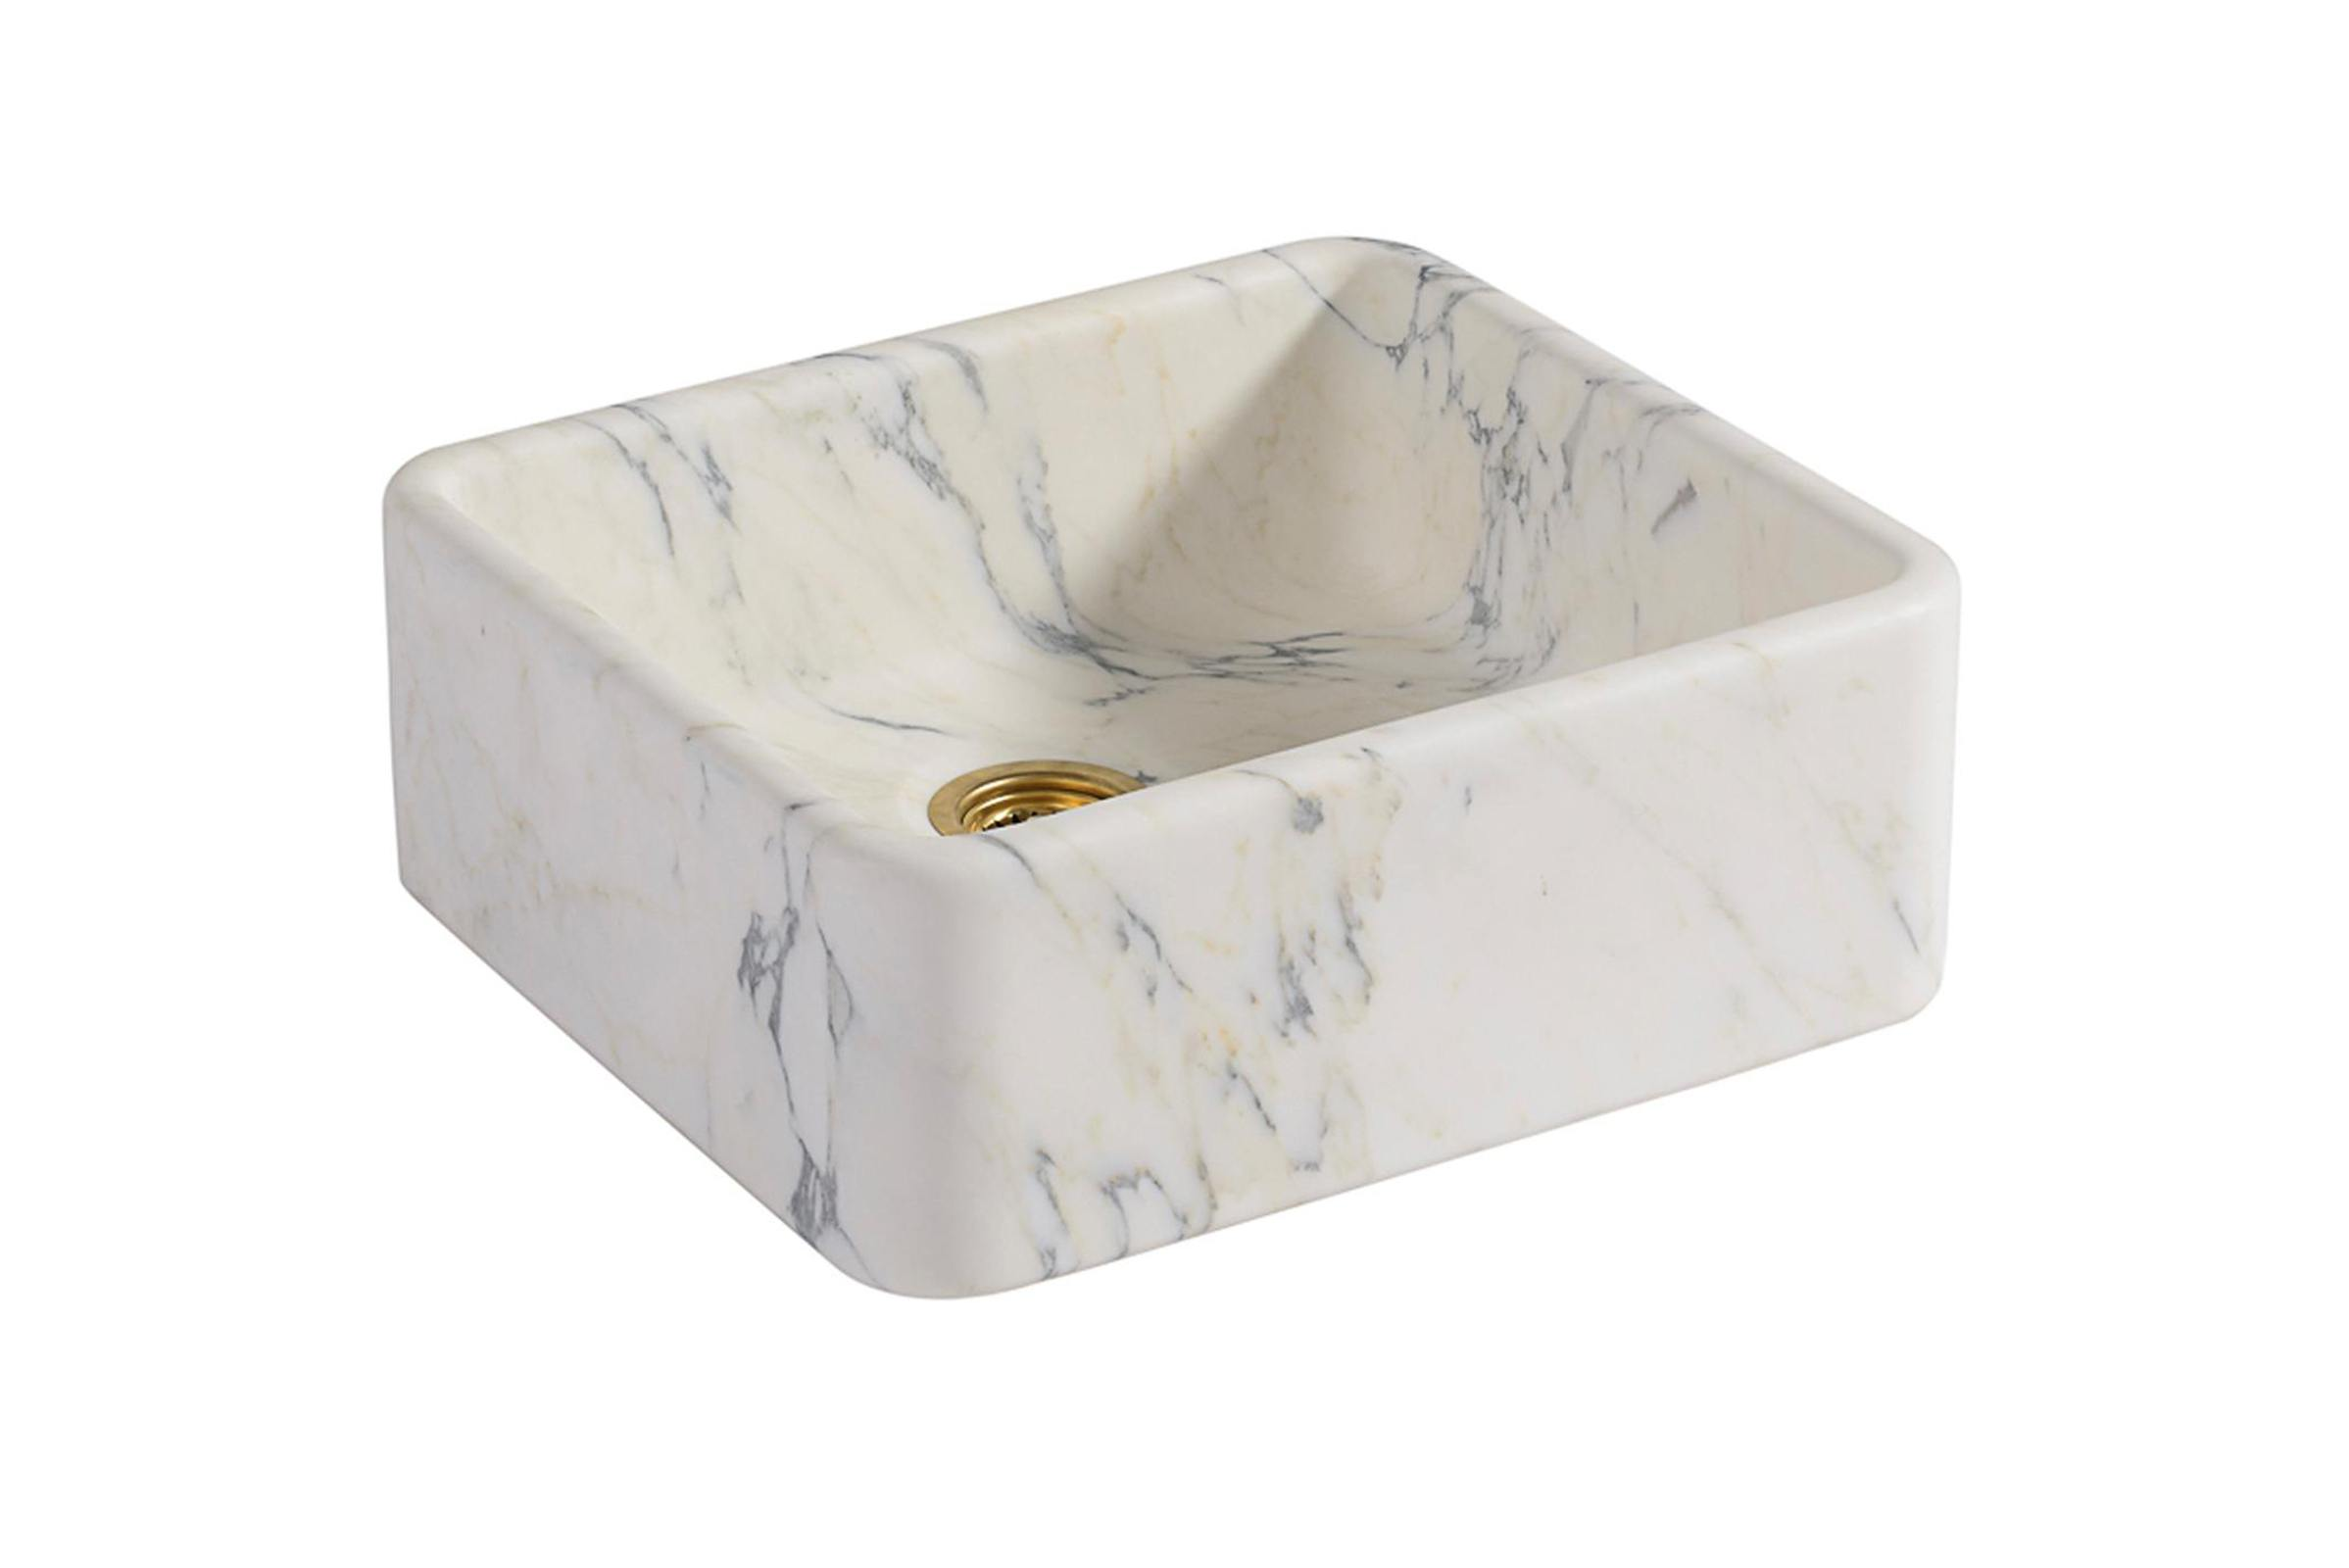 Tuscan Farmhouse 23 5/8'' Single Marble Sink photo 1